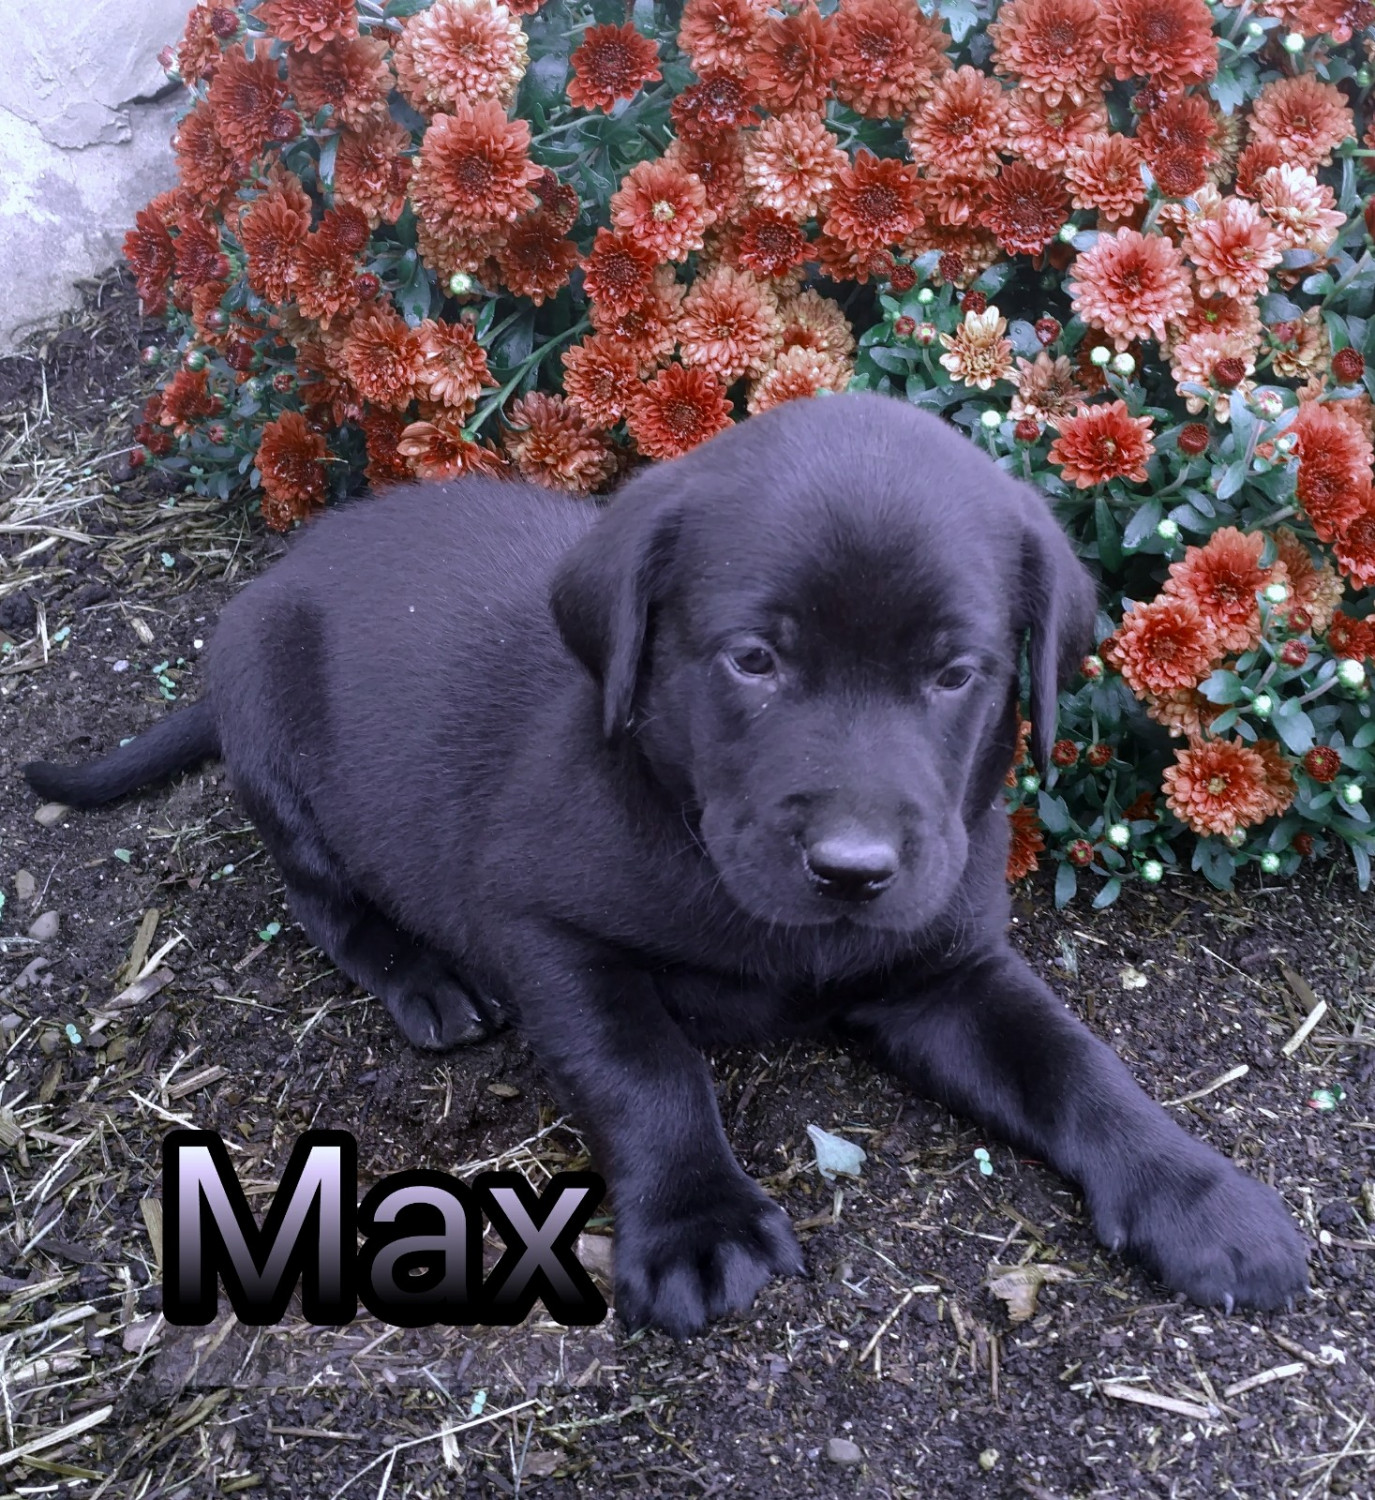 Labrador Retriever Puppies For Sale New York 38 Conquest Ny 284454